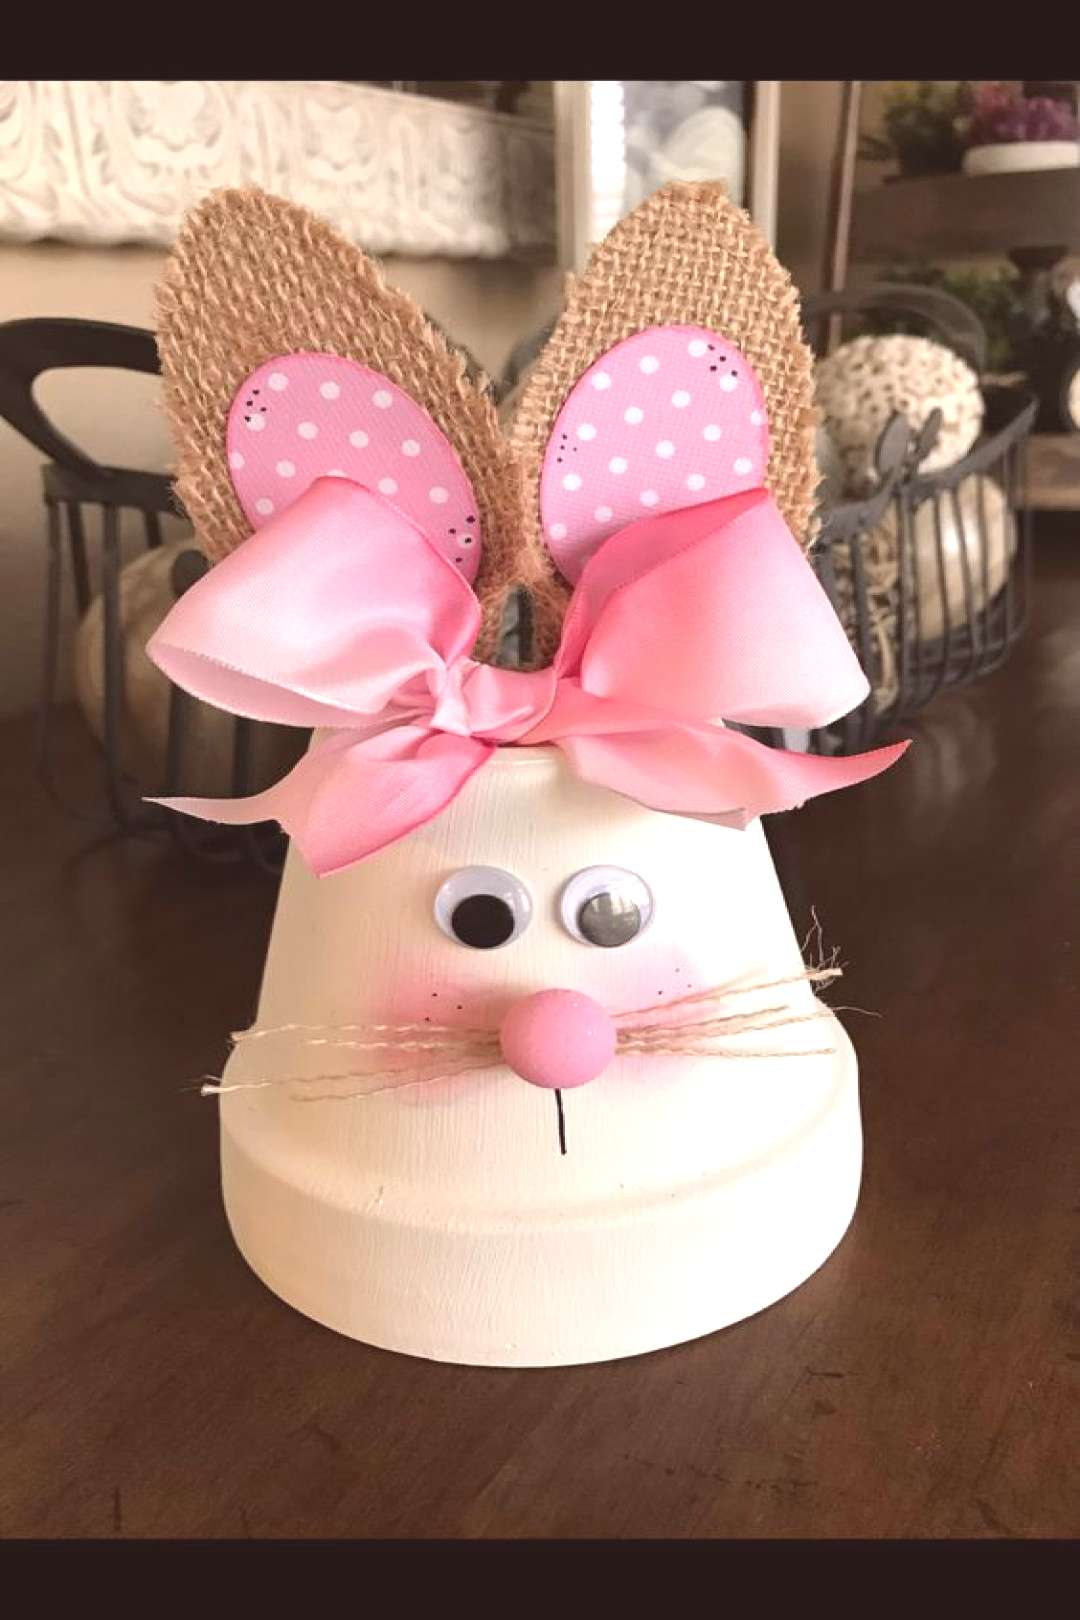 Tinker Easter bunnies made easy - 25 cute Easter bunny craft ideas Tinker Easter bunnies made easy